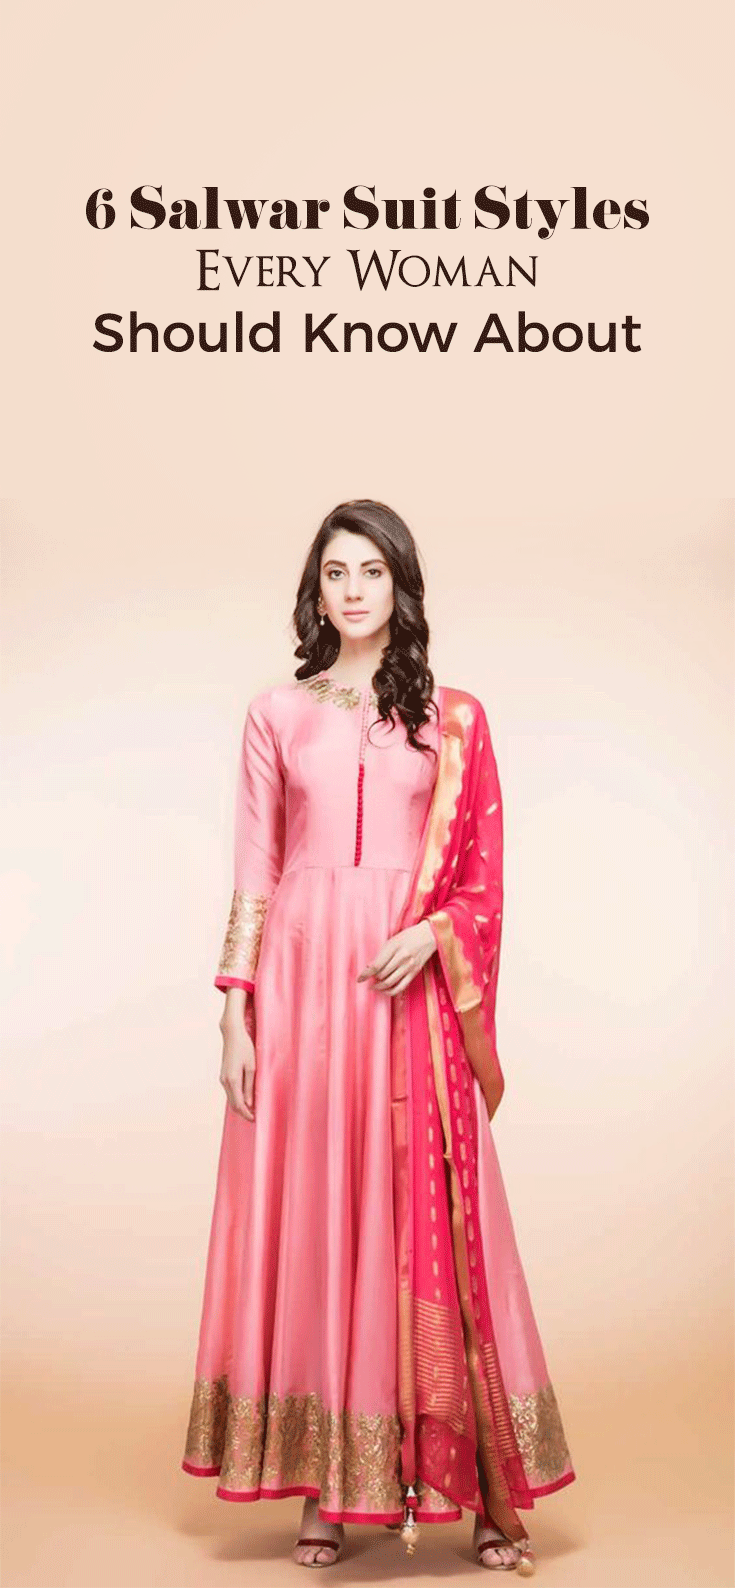 Salwar Suits A Must Ethnic Wear In Every Woman's Wardrobe